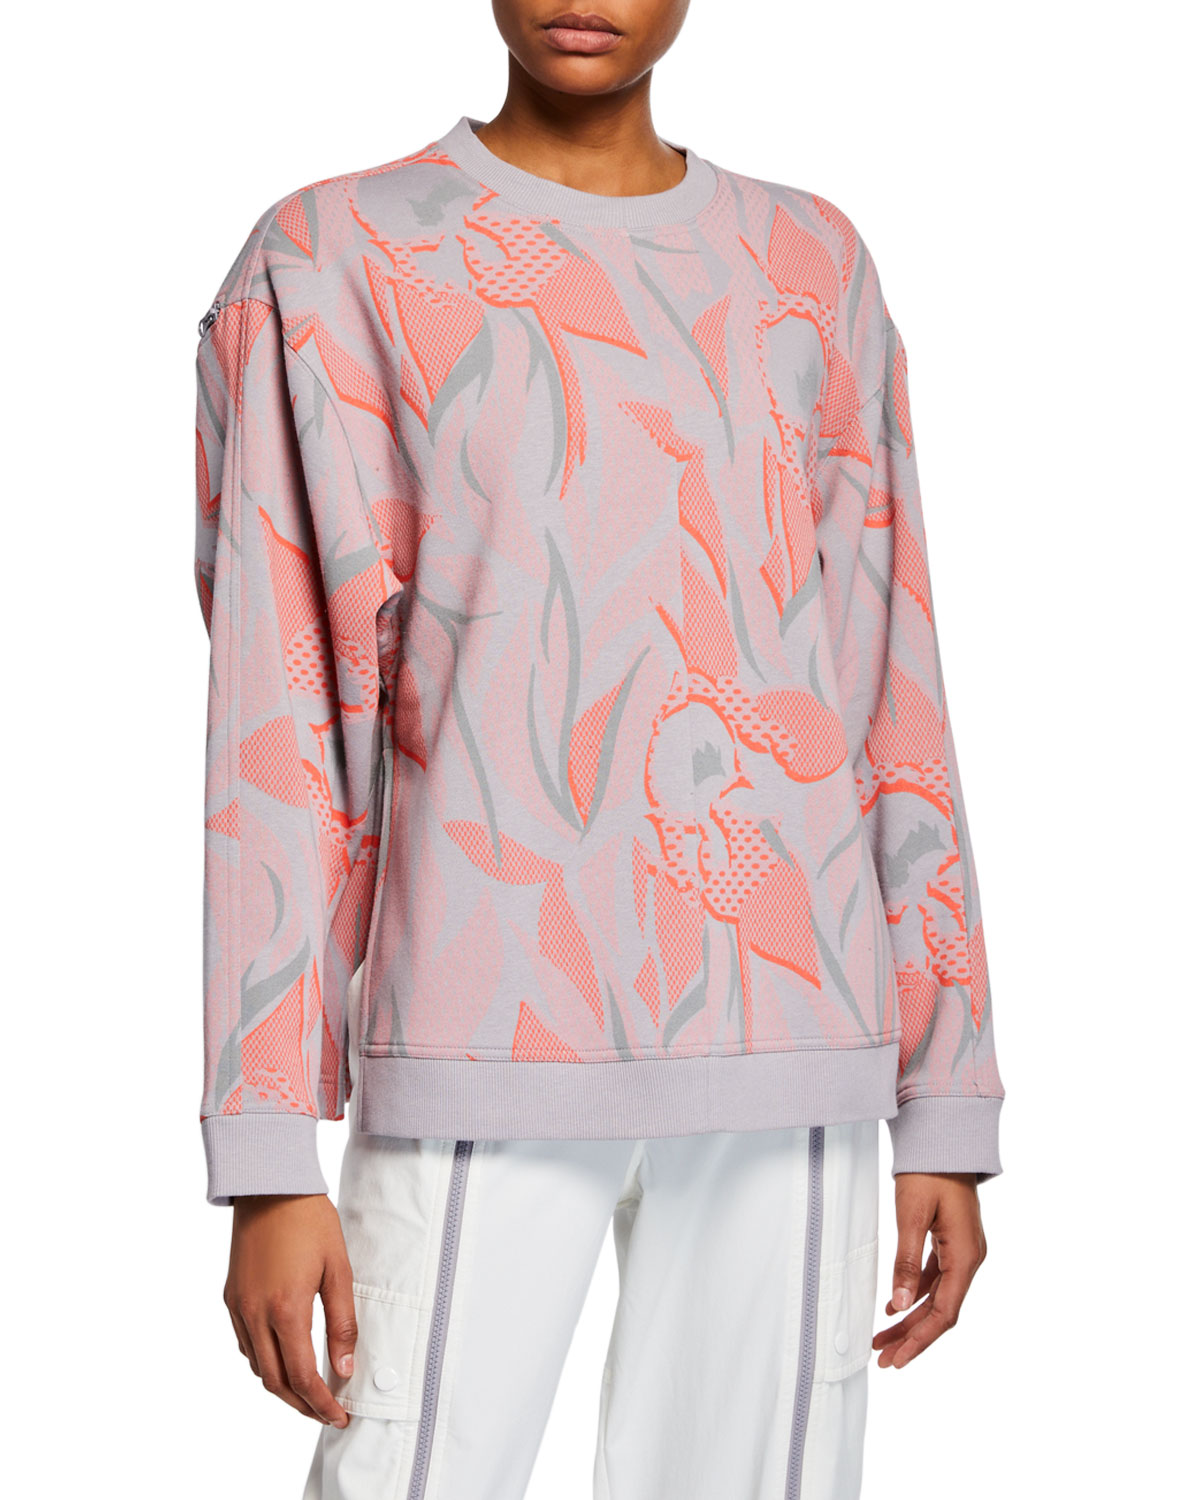 shades of great look strong packing Floral Print Sweatshirt w/ Zippers